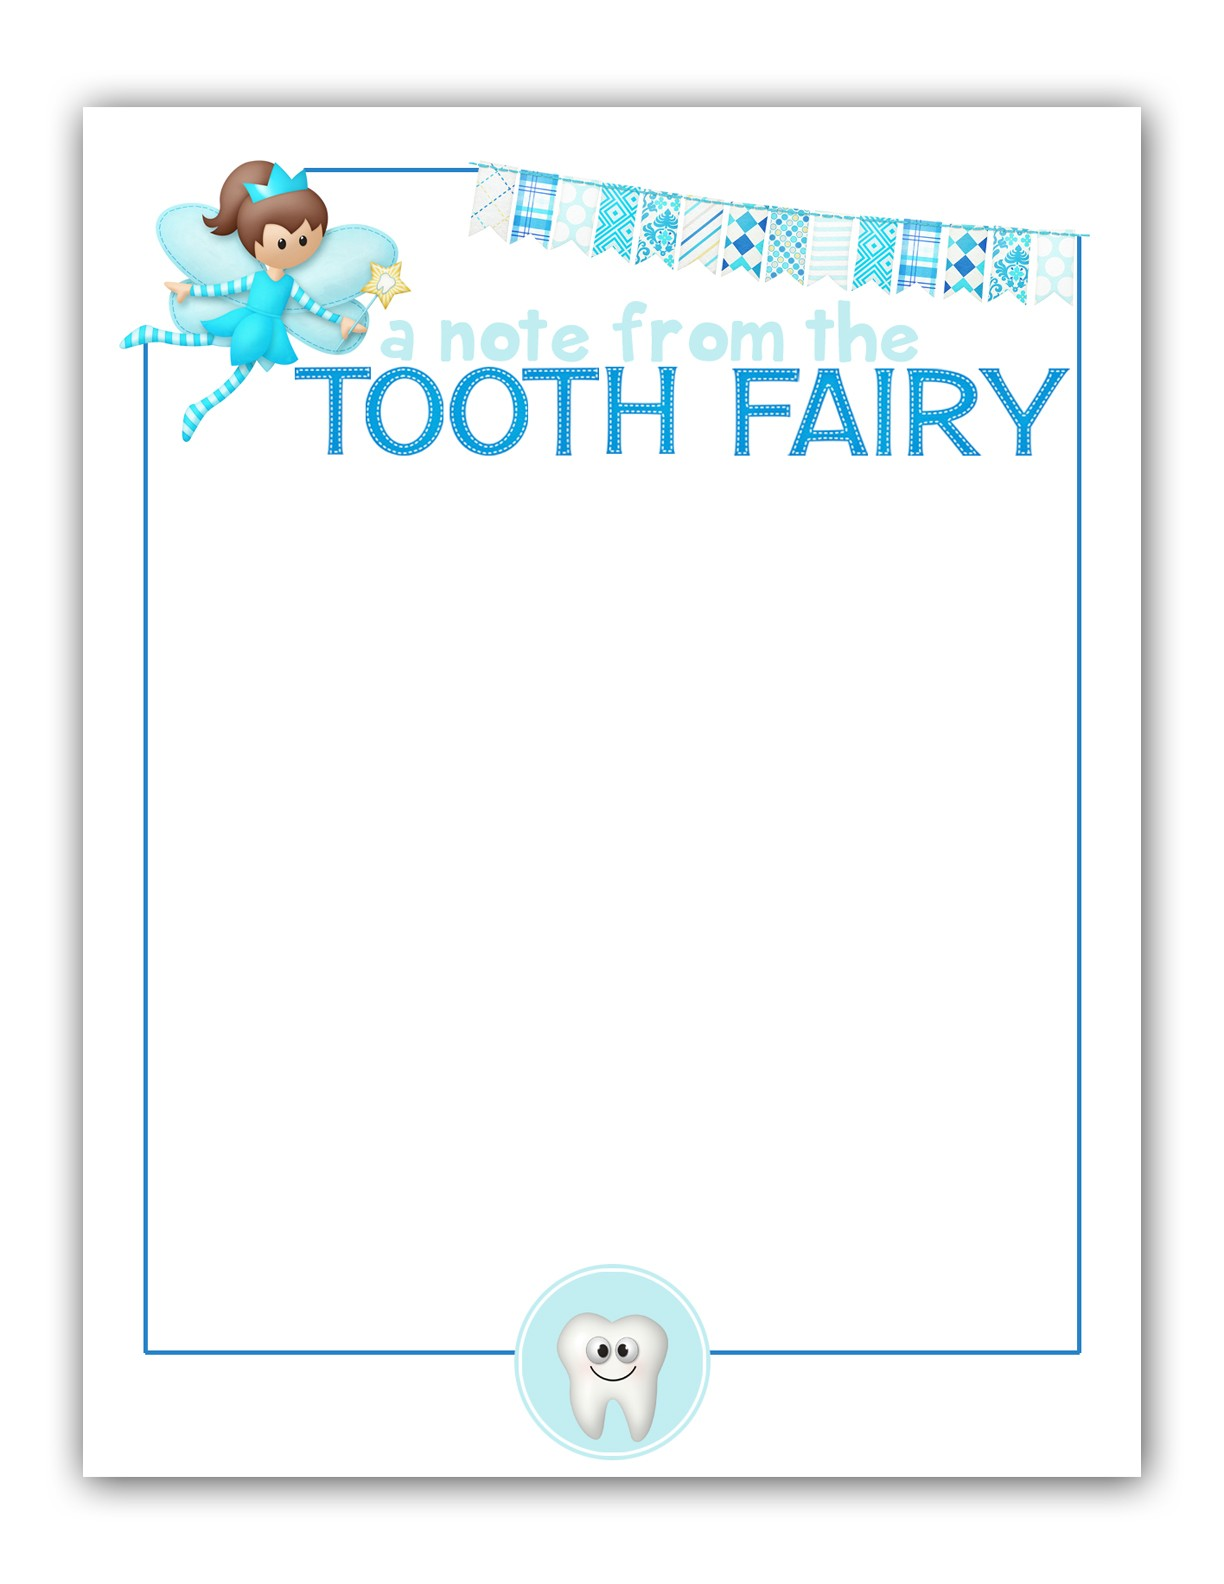 tooth fairy letter template download  M|K Designs Blog: Tooth Fairy Stationary - FREE Printable - tooth fairy letter template download